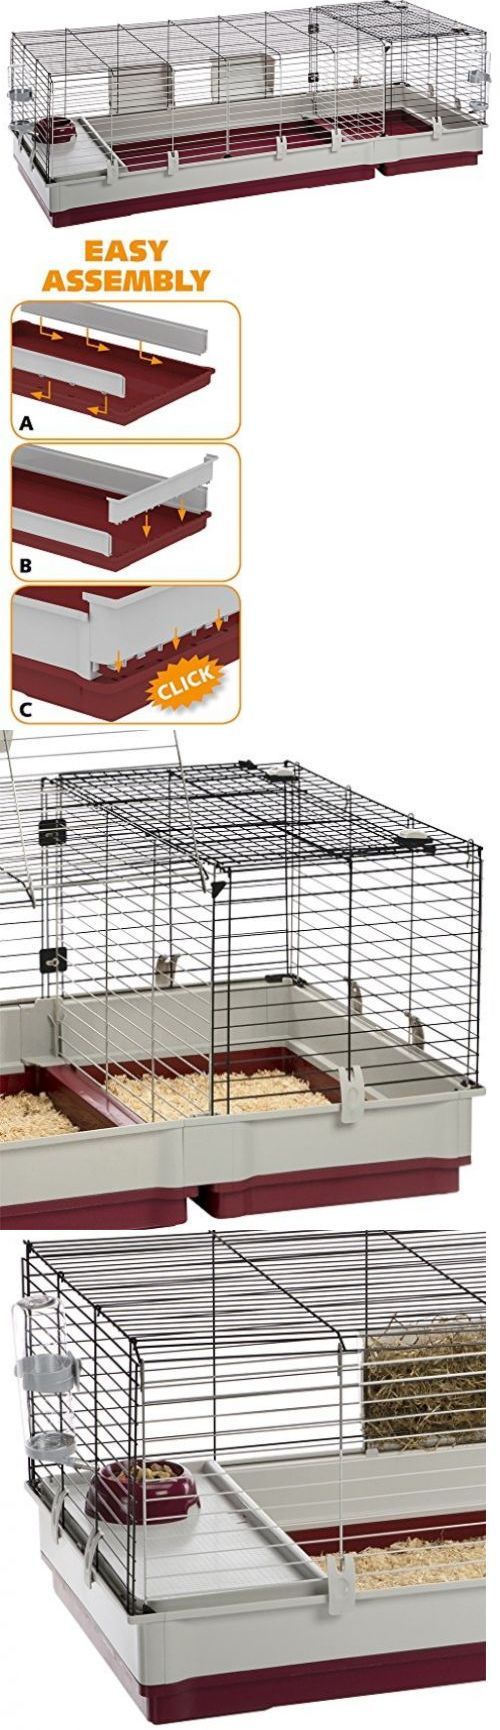 Cages and Enclosure 63108: Guinea Pig Cage Hedgehog Bunny Rabbit Chinchilla Extra Large Habitat Accessories BUY IT NOW ONLY: $185.95